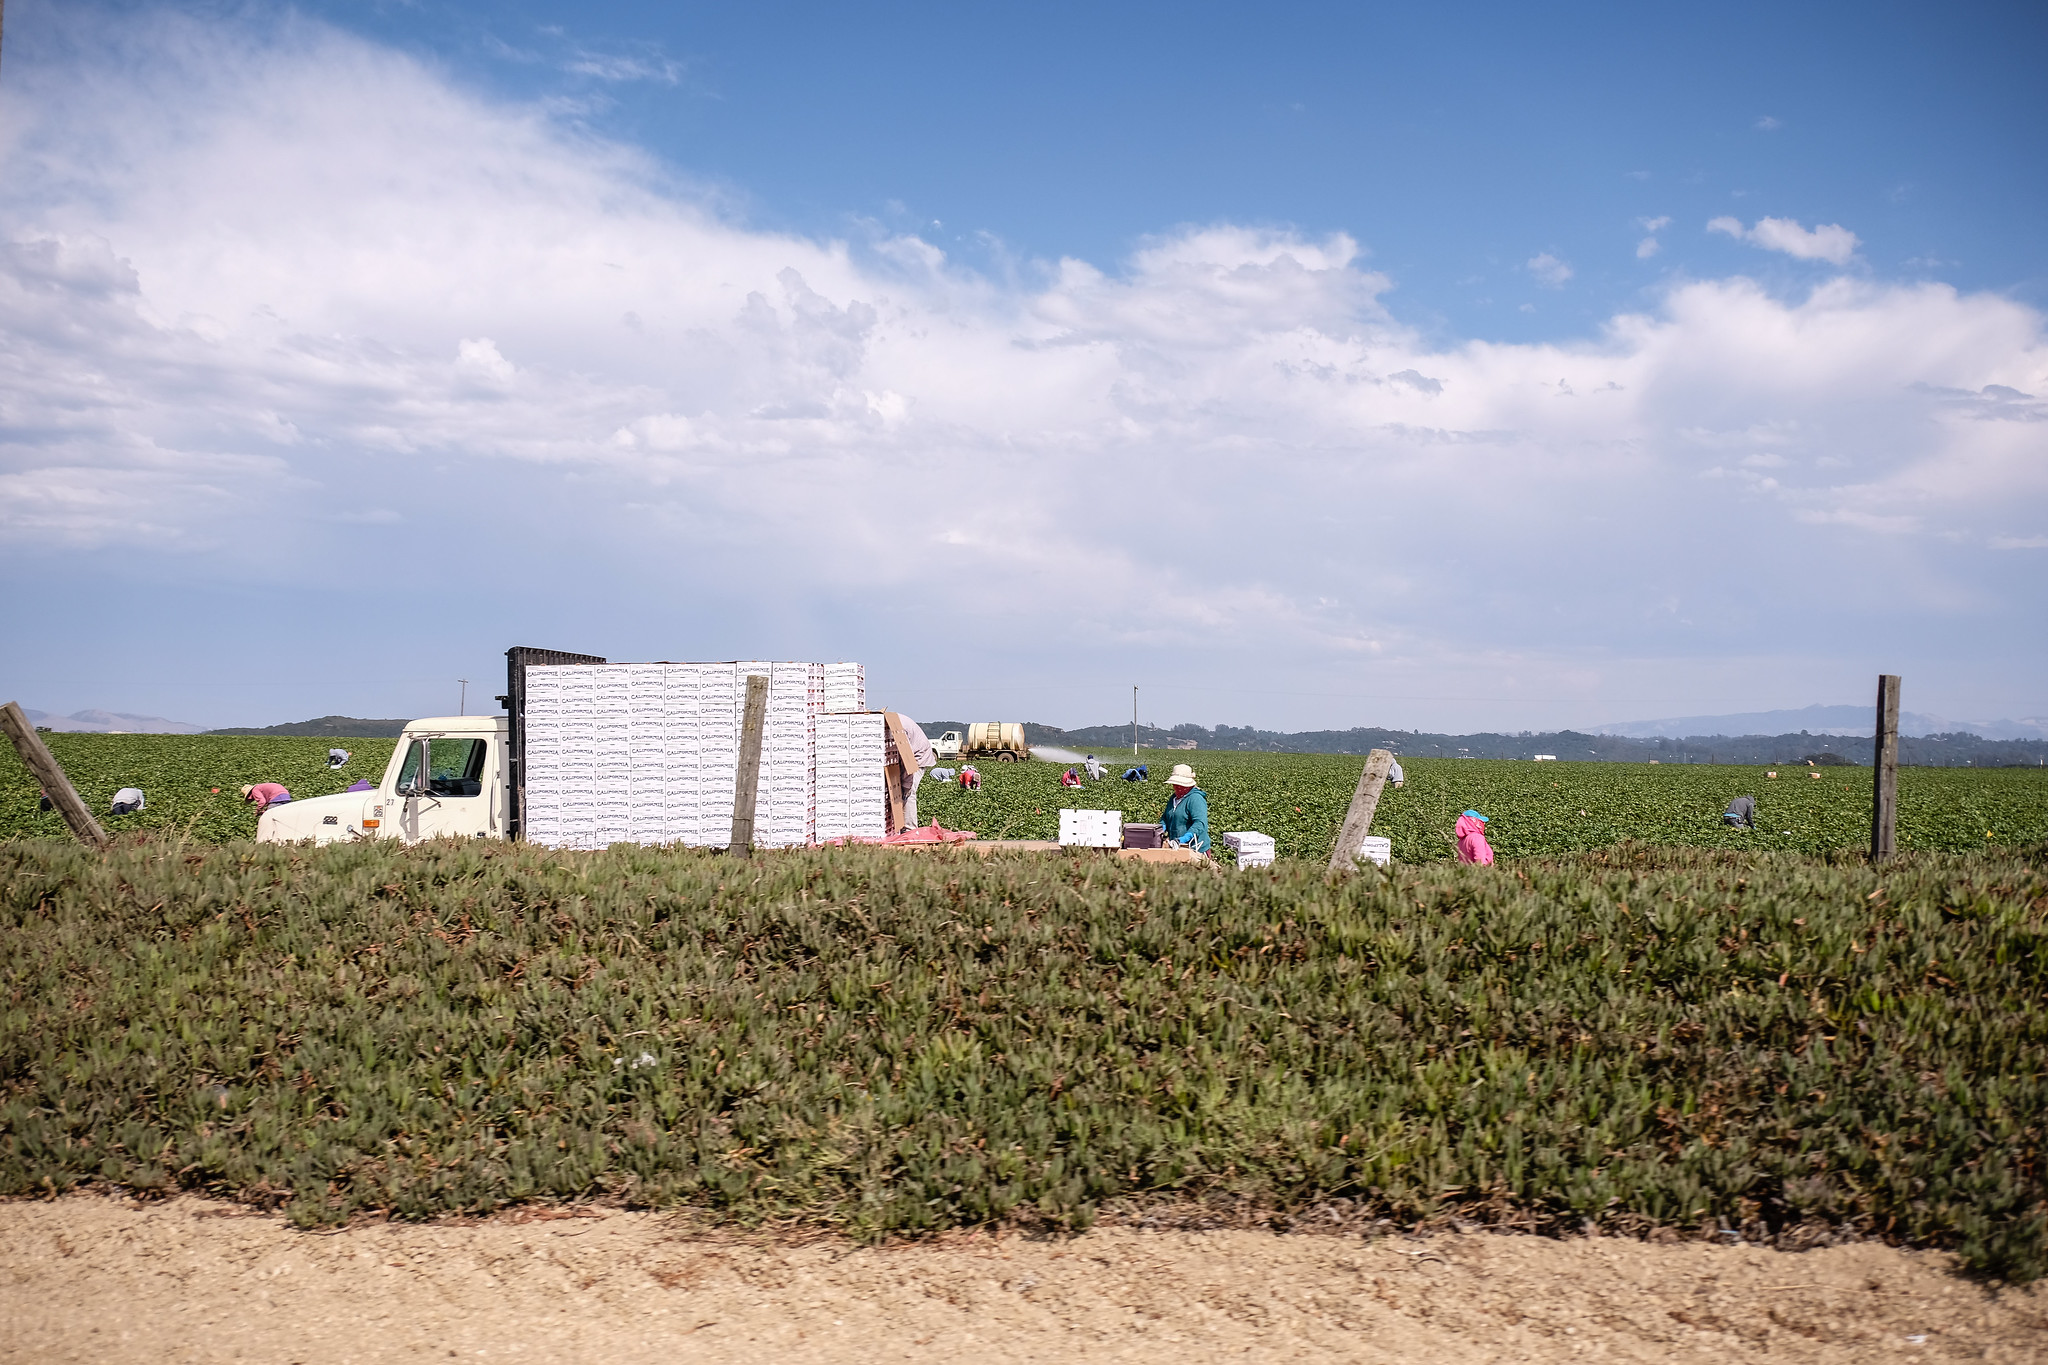 A white truck with white produce boxes stacked on the back parked in a field with workers bent over, low mountains and blue sky in the background.